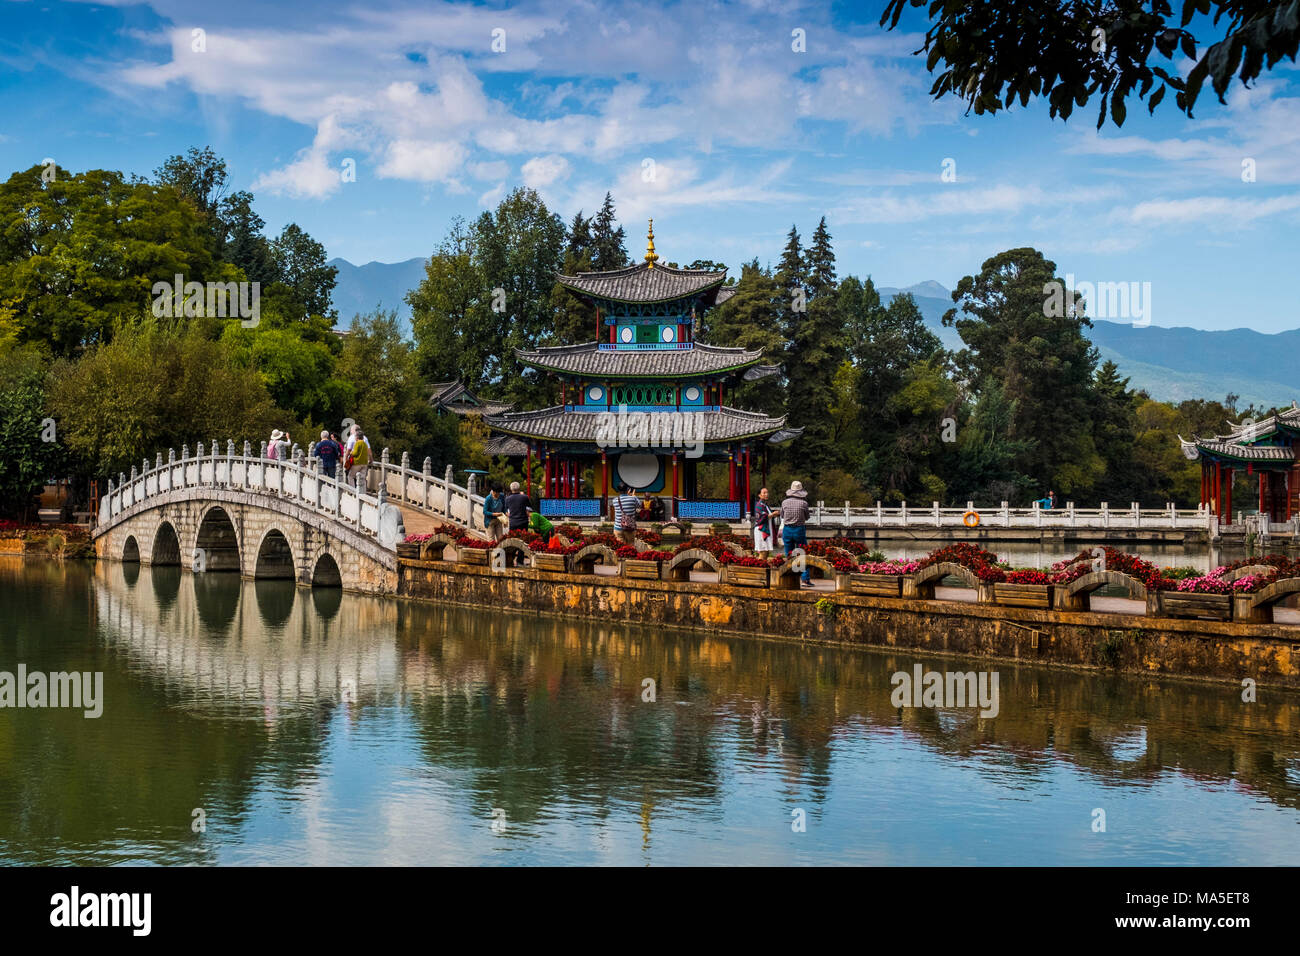 Tourists over arched bridge at Black Dragon Pool, Lijiang, Yunnan Province, China, Asia, Asian, East Asia, Far East - Stock Image